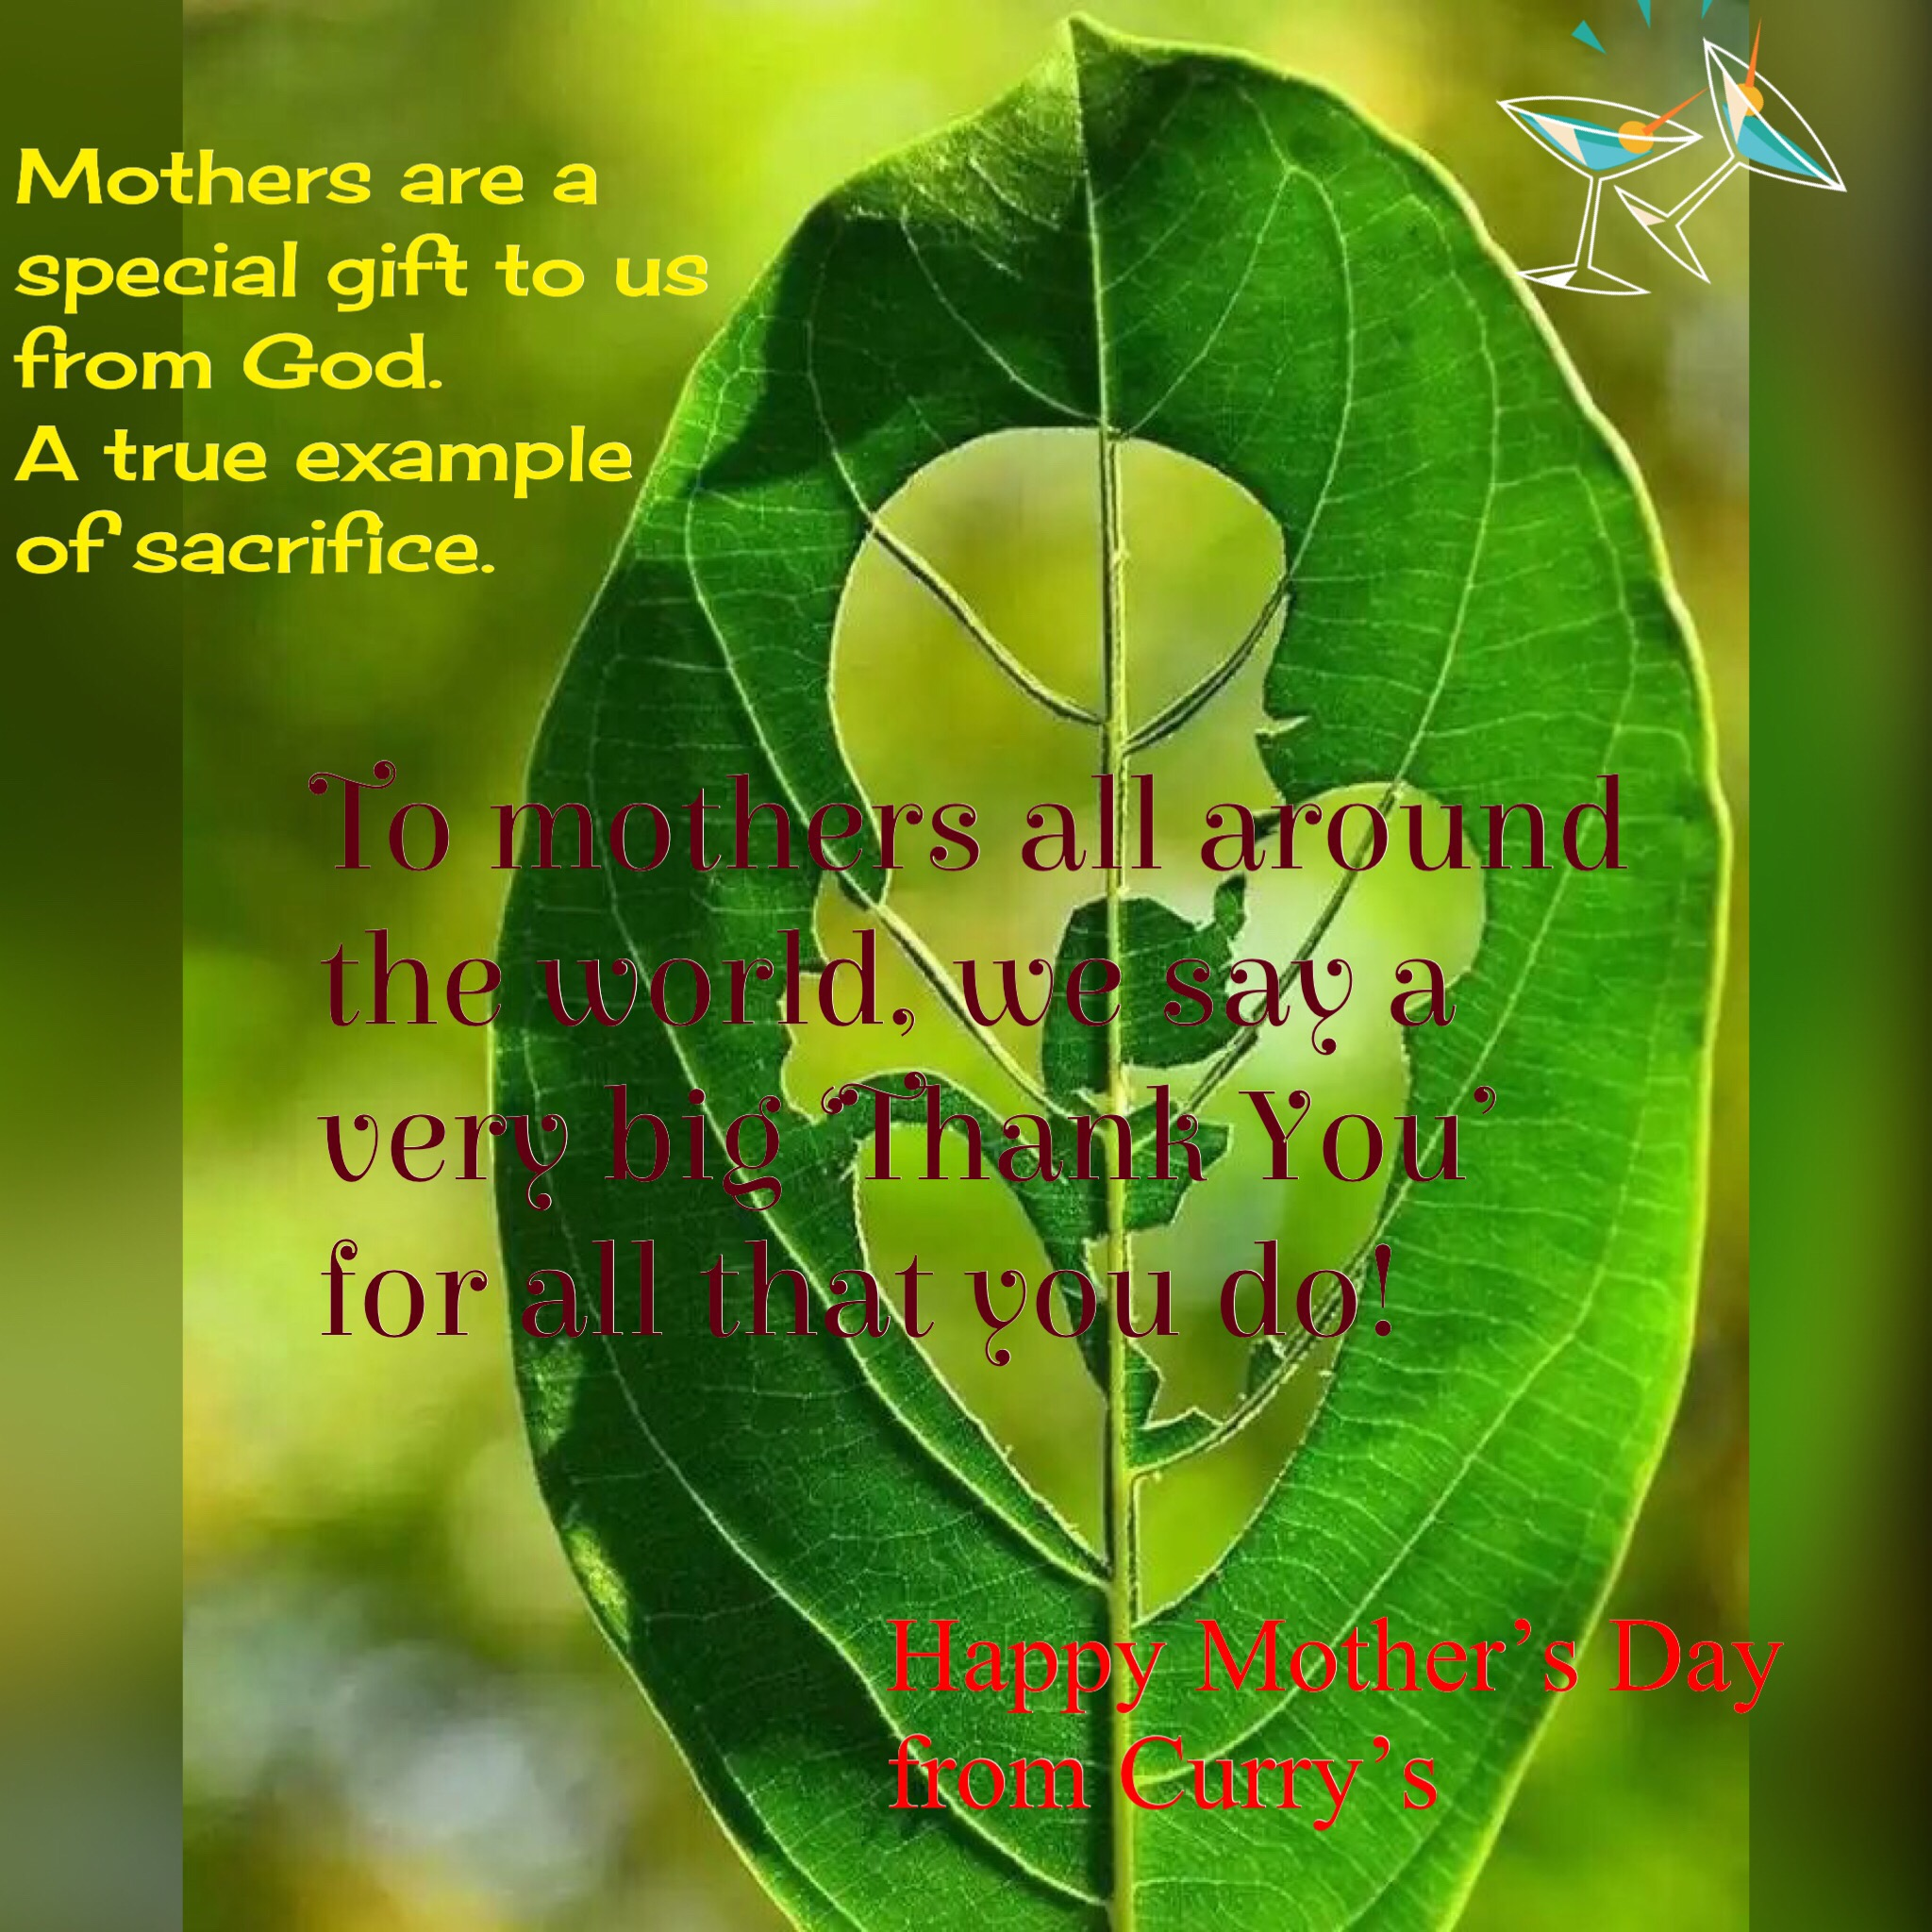 Happy Mother's Day 2018 from